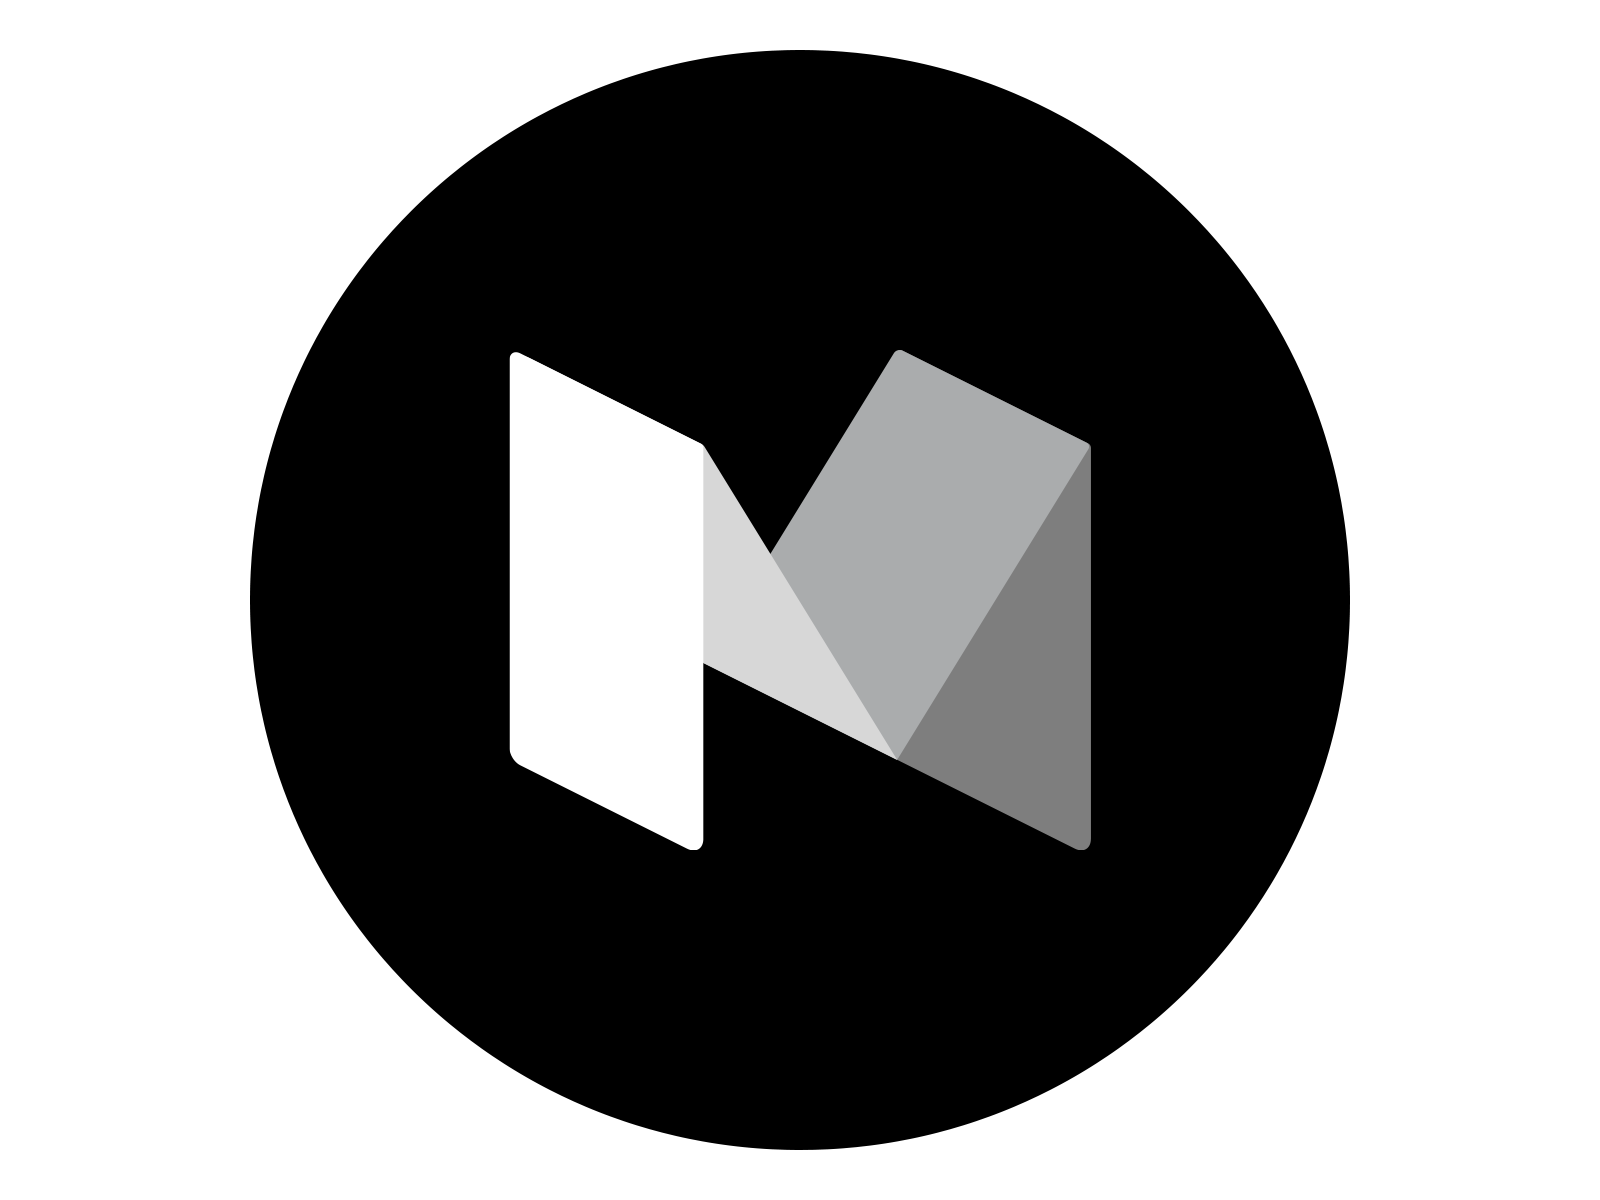 Medium Logo Icon